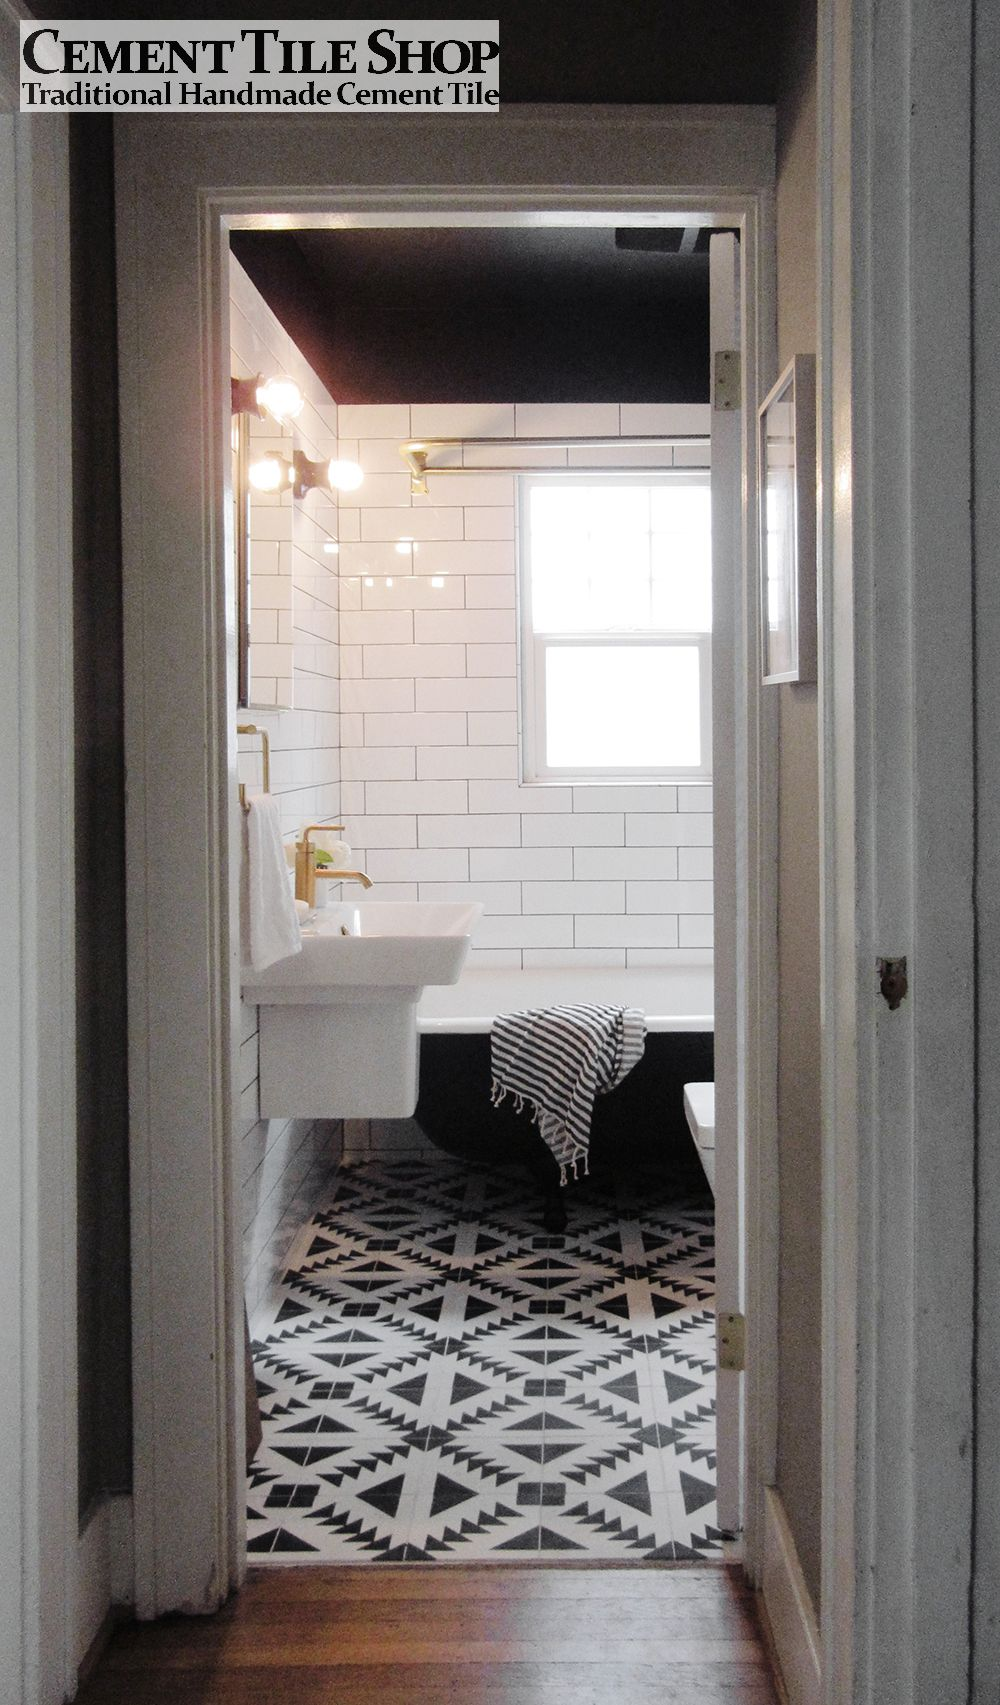 Cement tile shop blog encaustic cement tile Tile bathroom